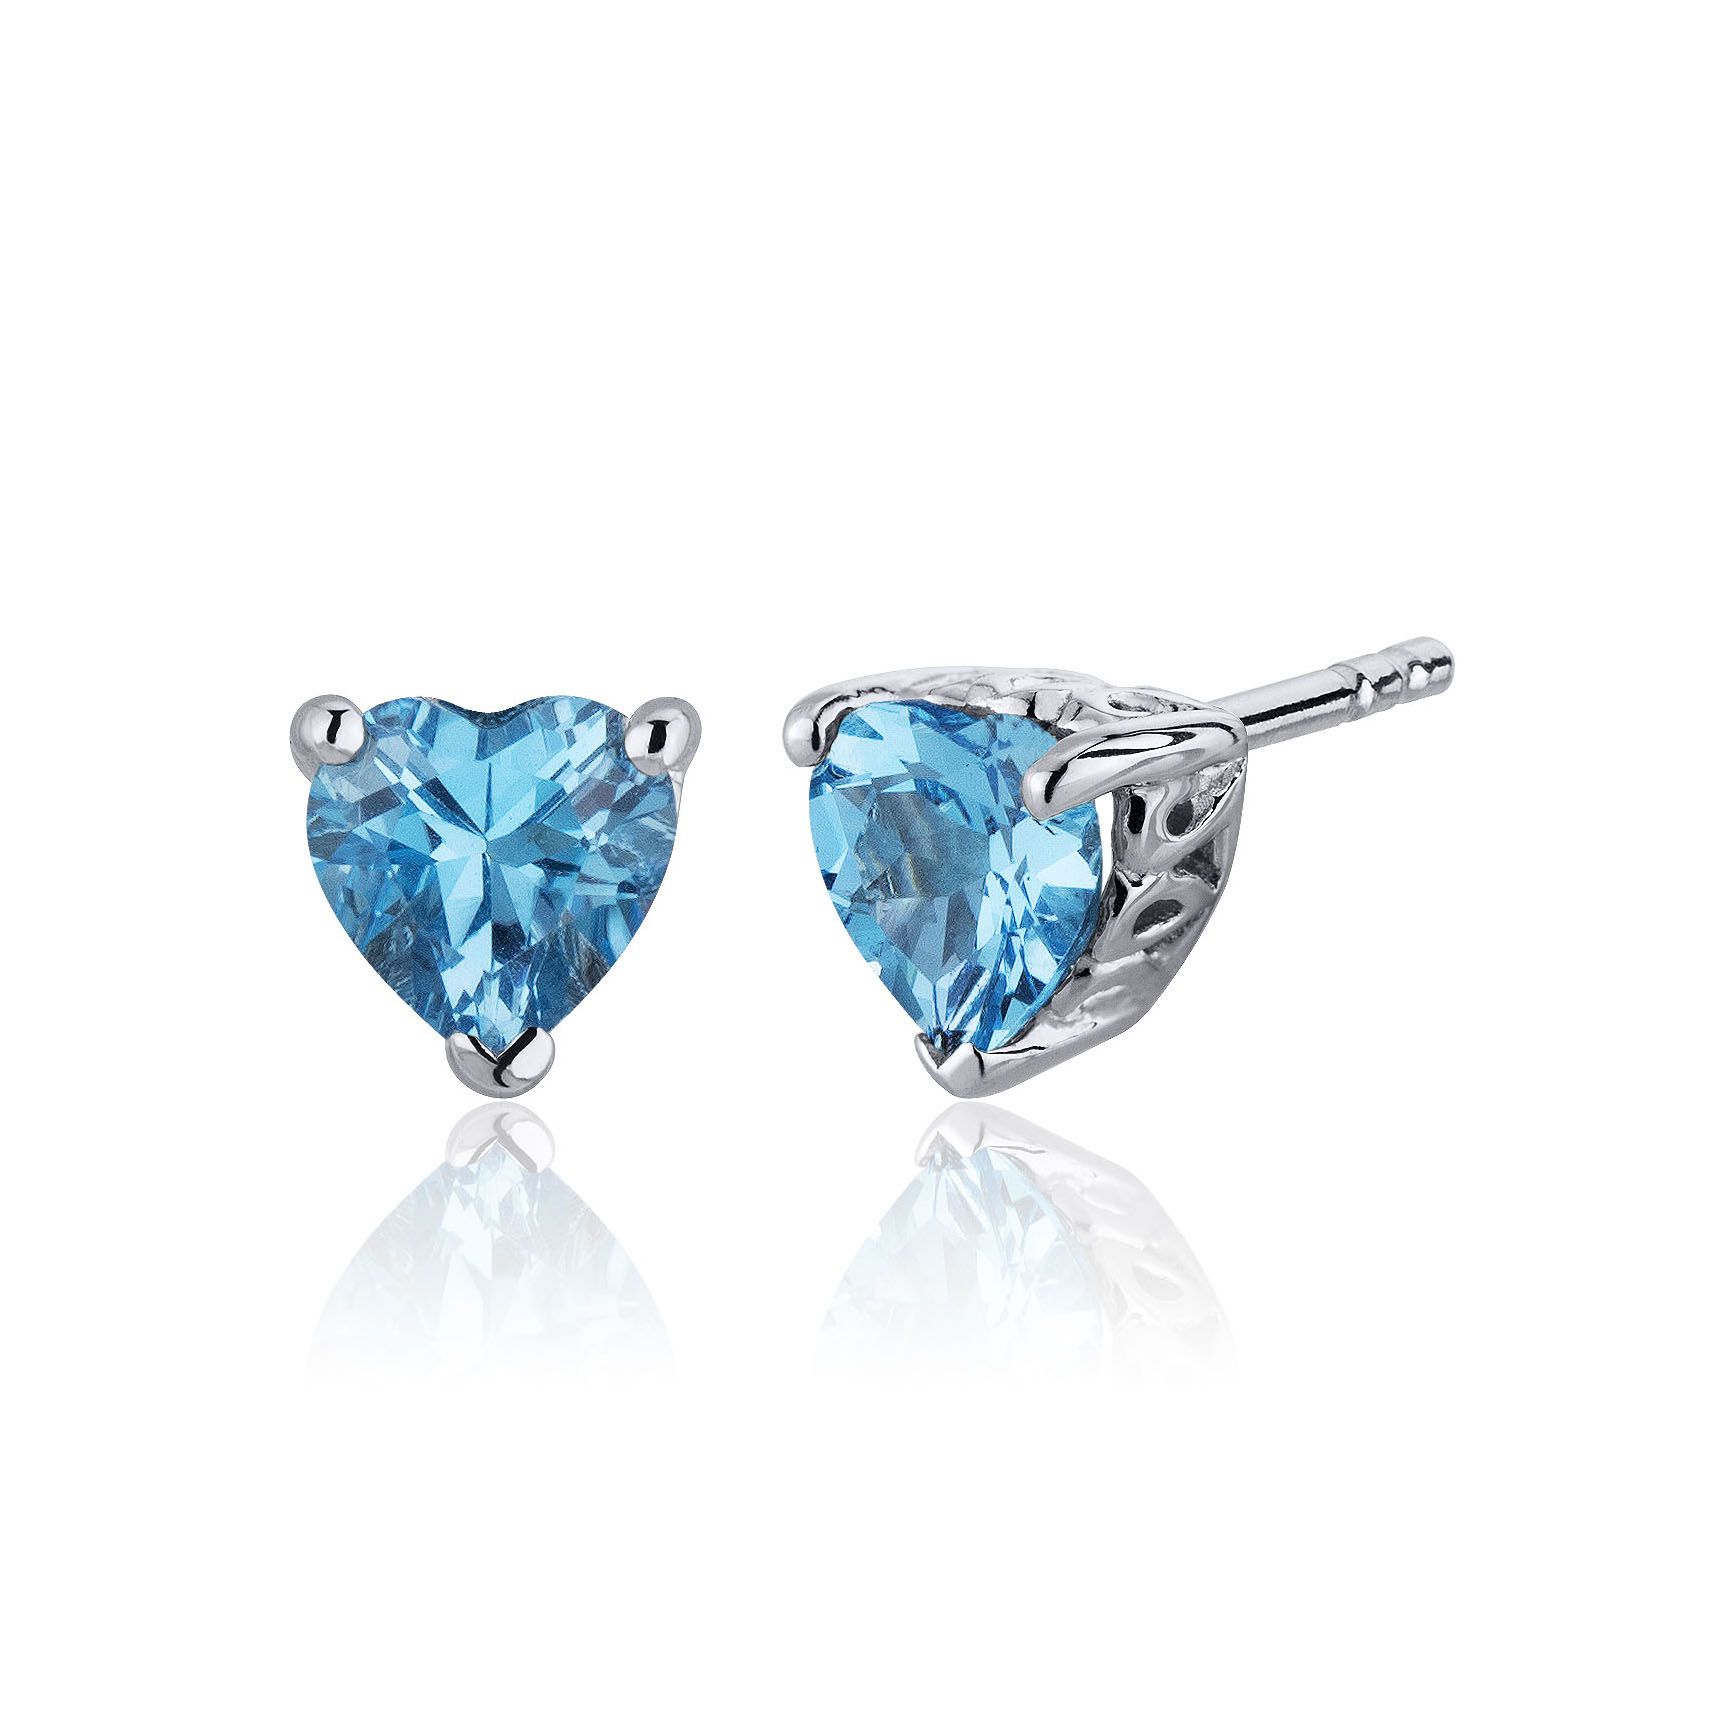 Heart Shaped Swiss Blue Topaz Stud Earrings in Sterling Silver